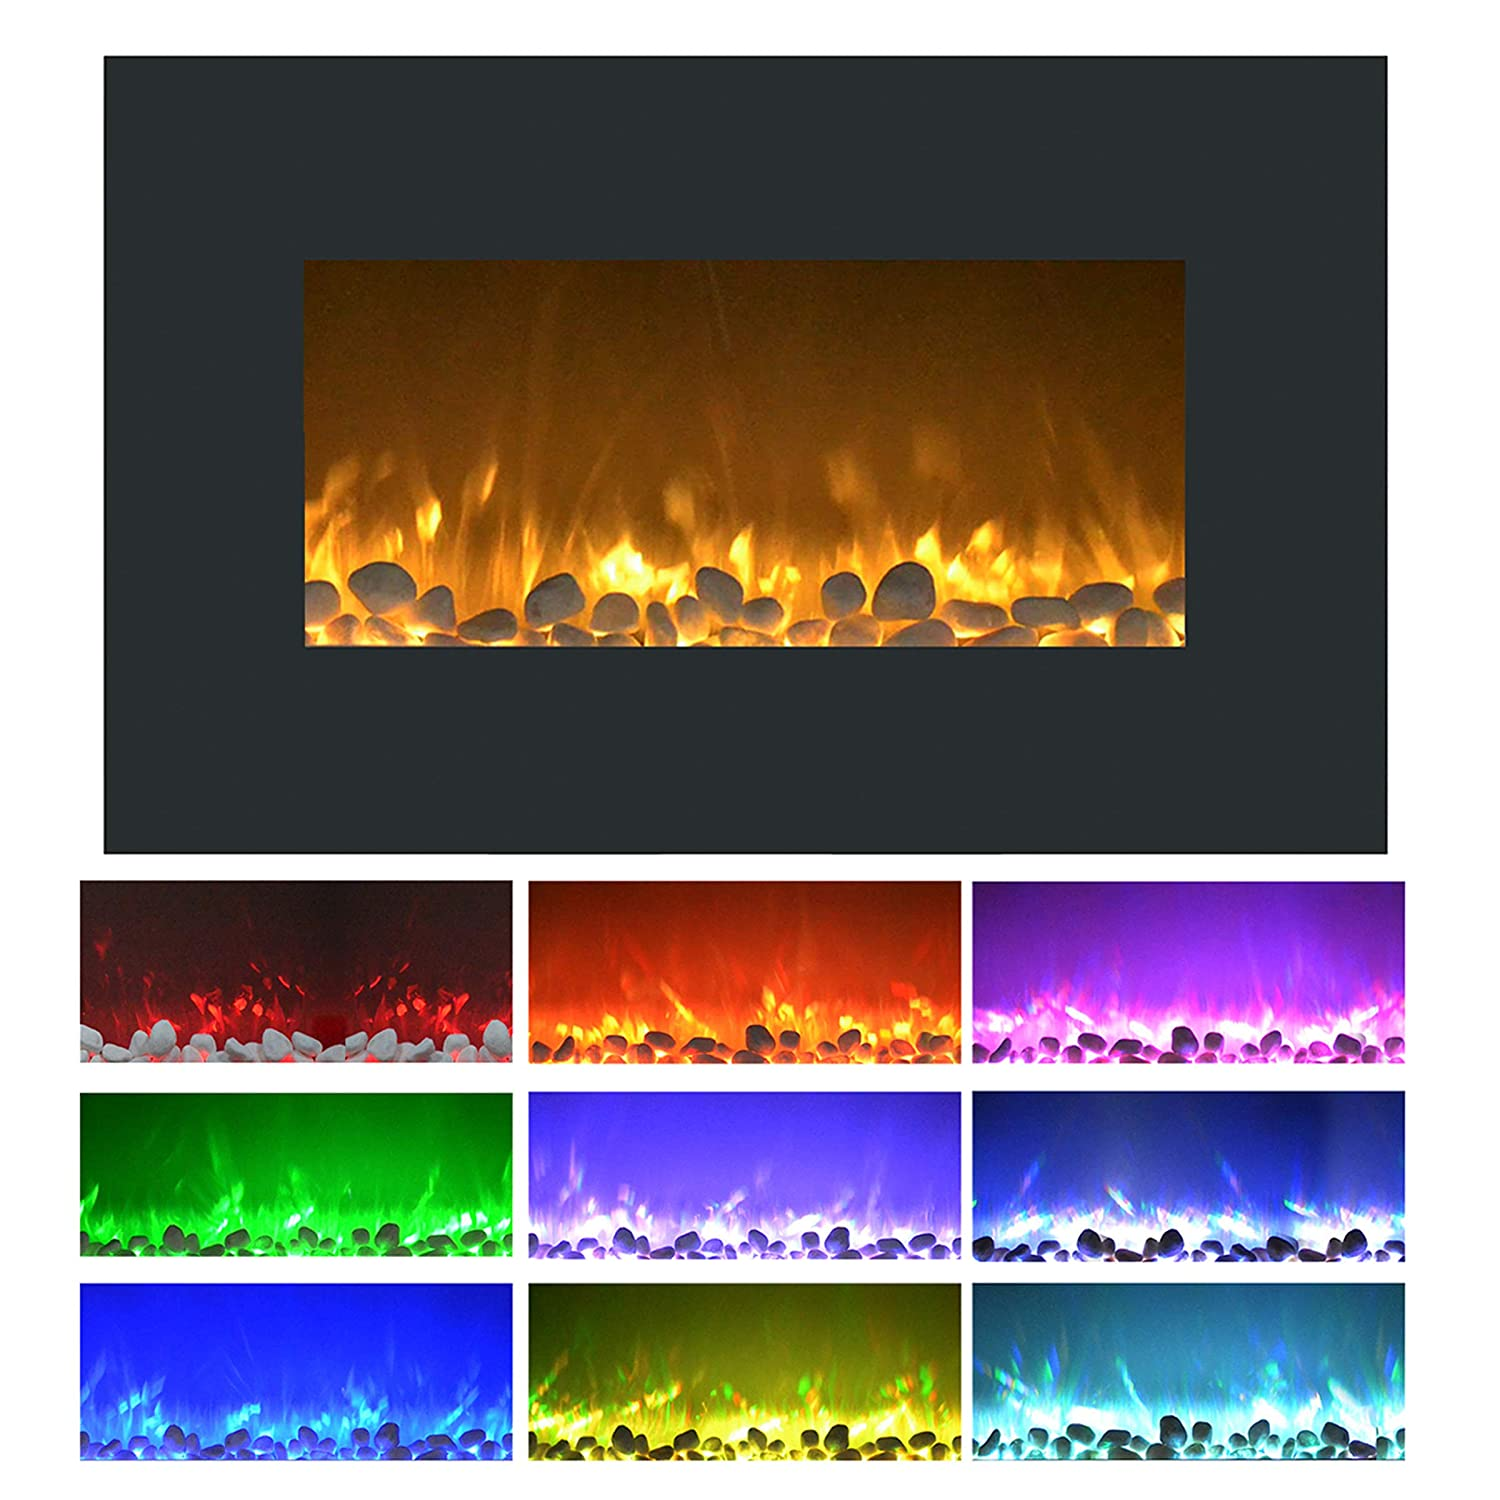 World Marketing Comfort Glow Electric Infrared Electic Quartz Fireplace, Length 10.2in, Width 23.1in, Height 26.1in